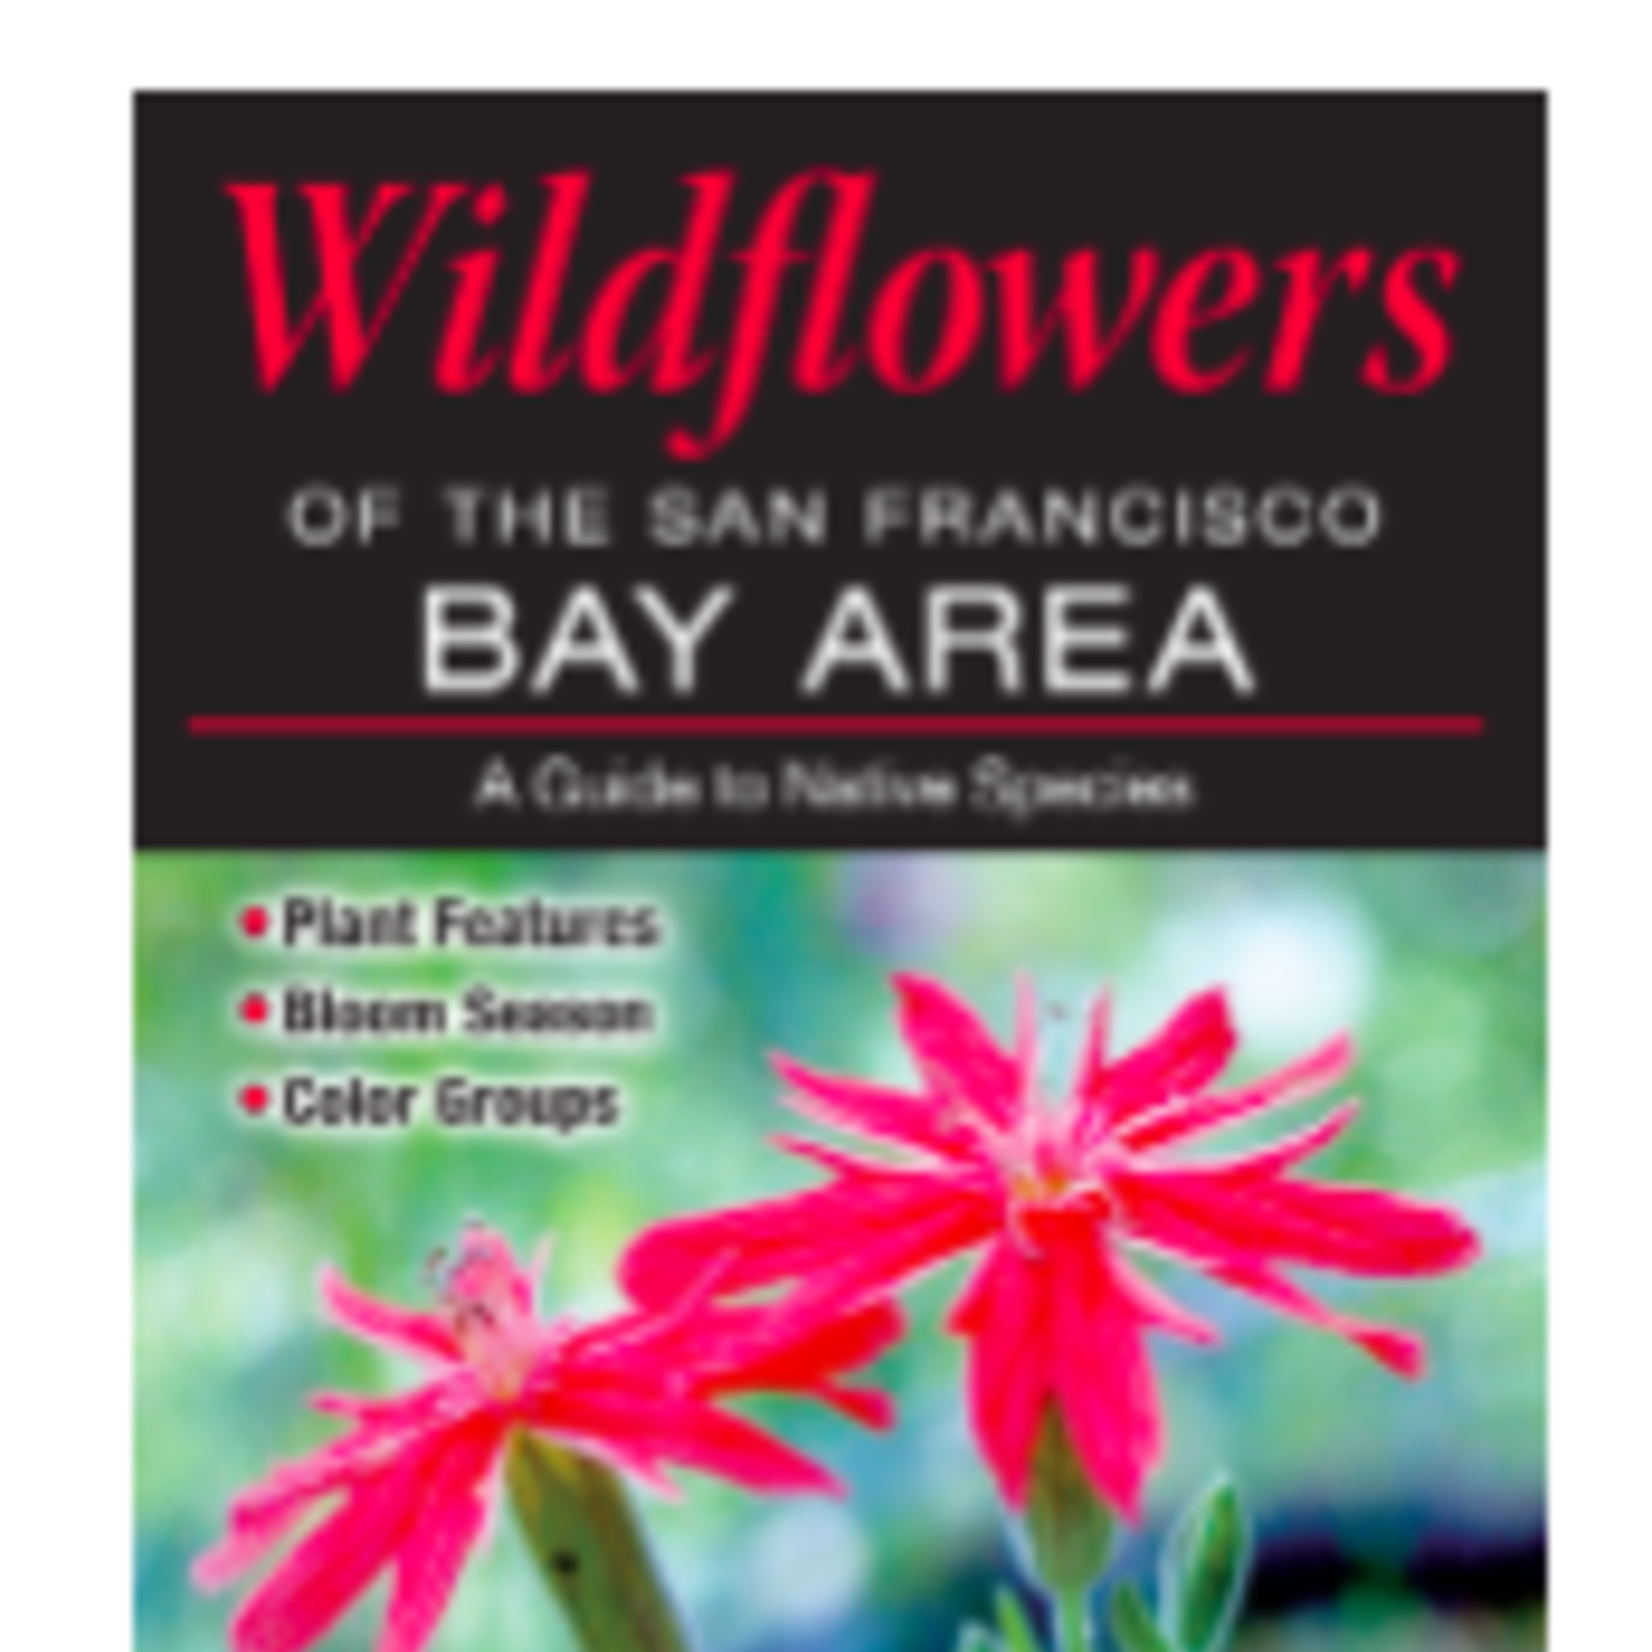 Wildflowers of the SF Bay Area